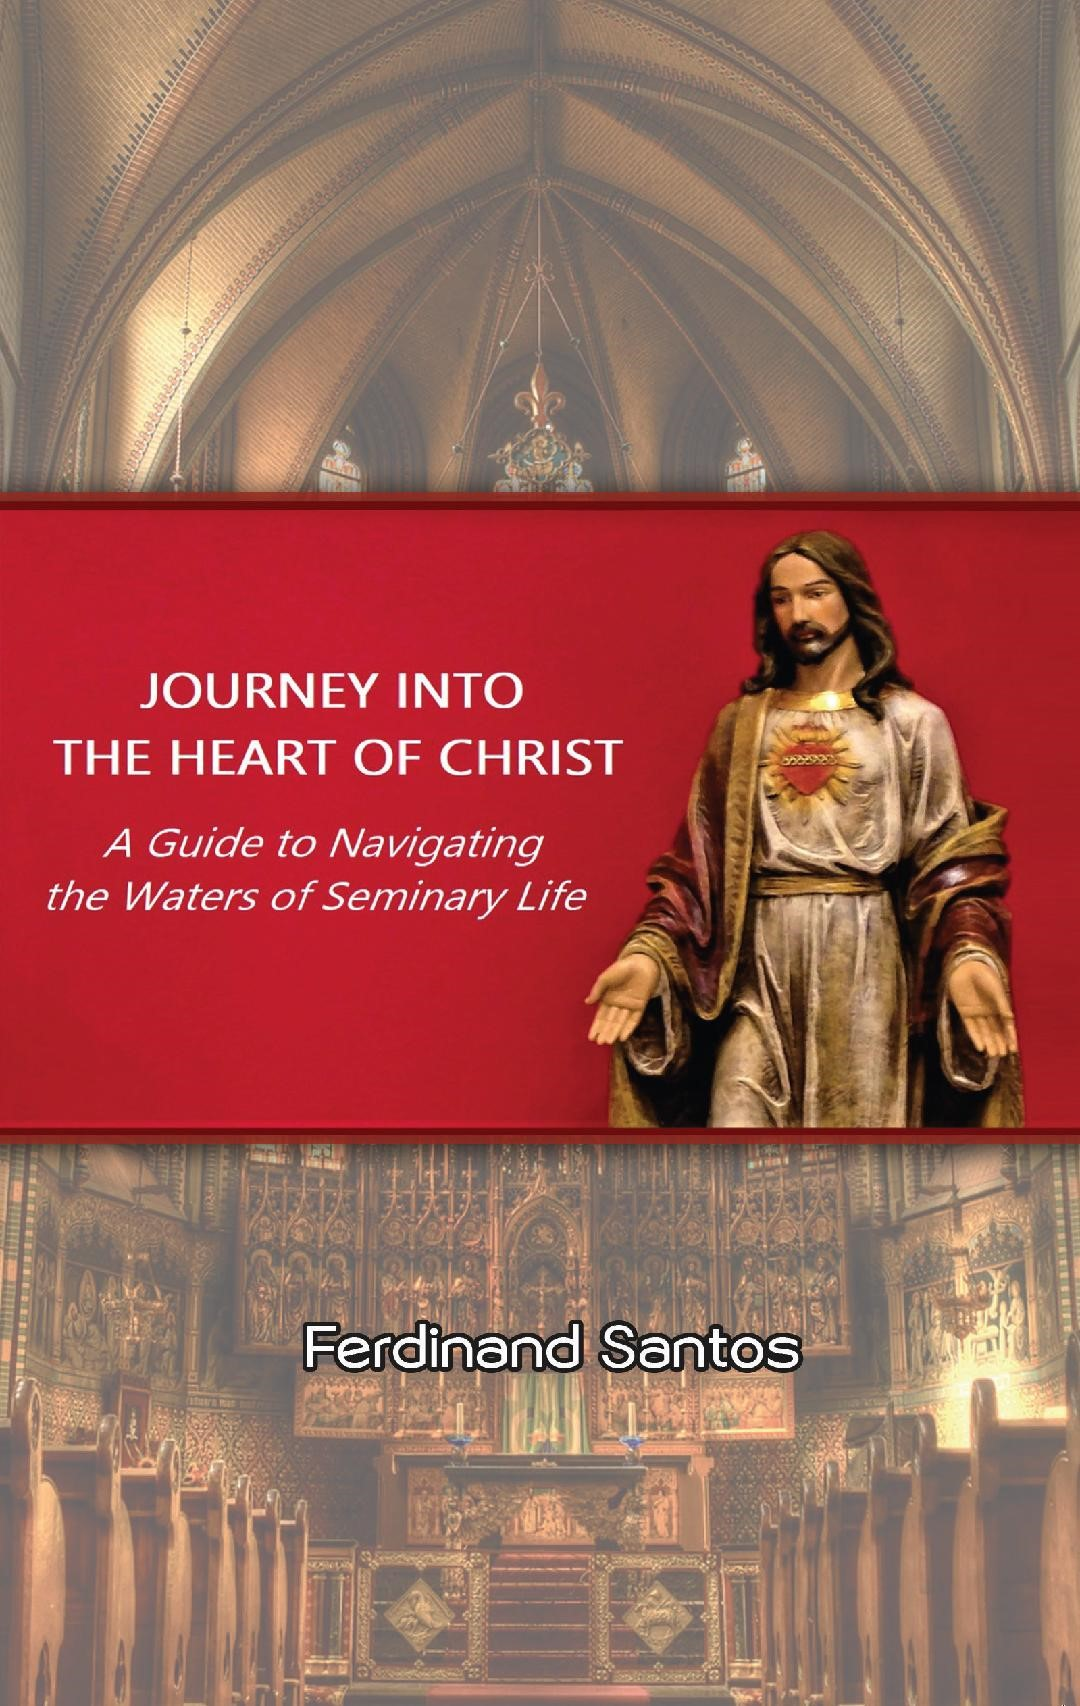 Journey into the Heart of Christ